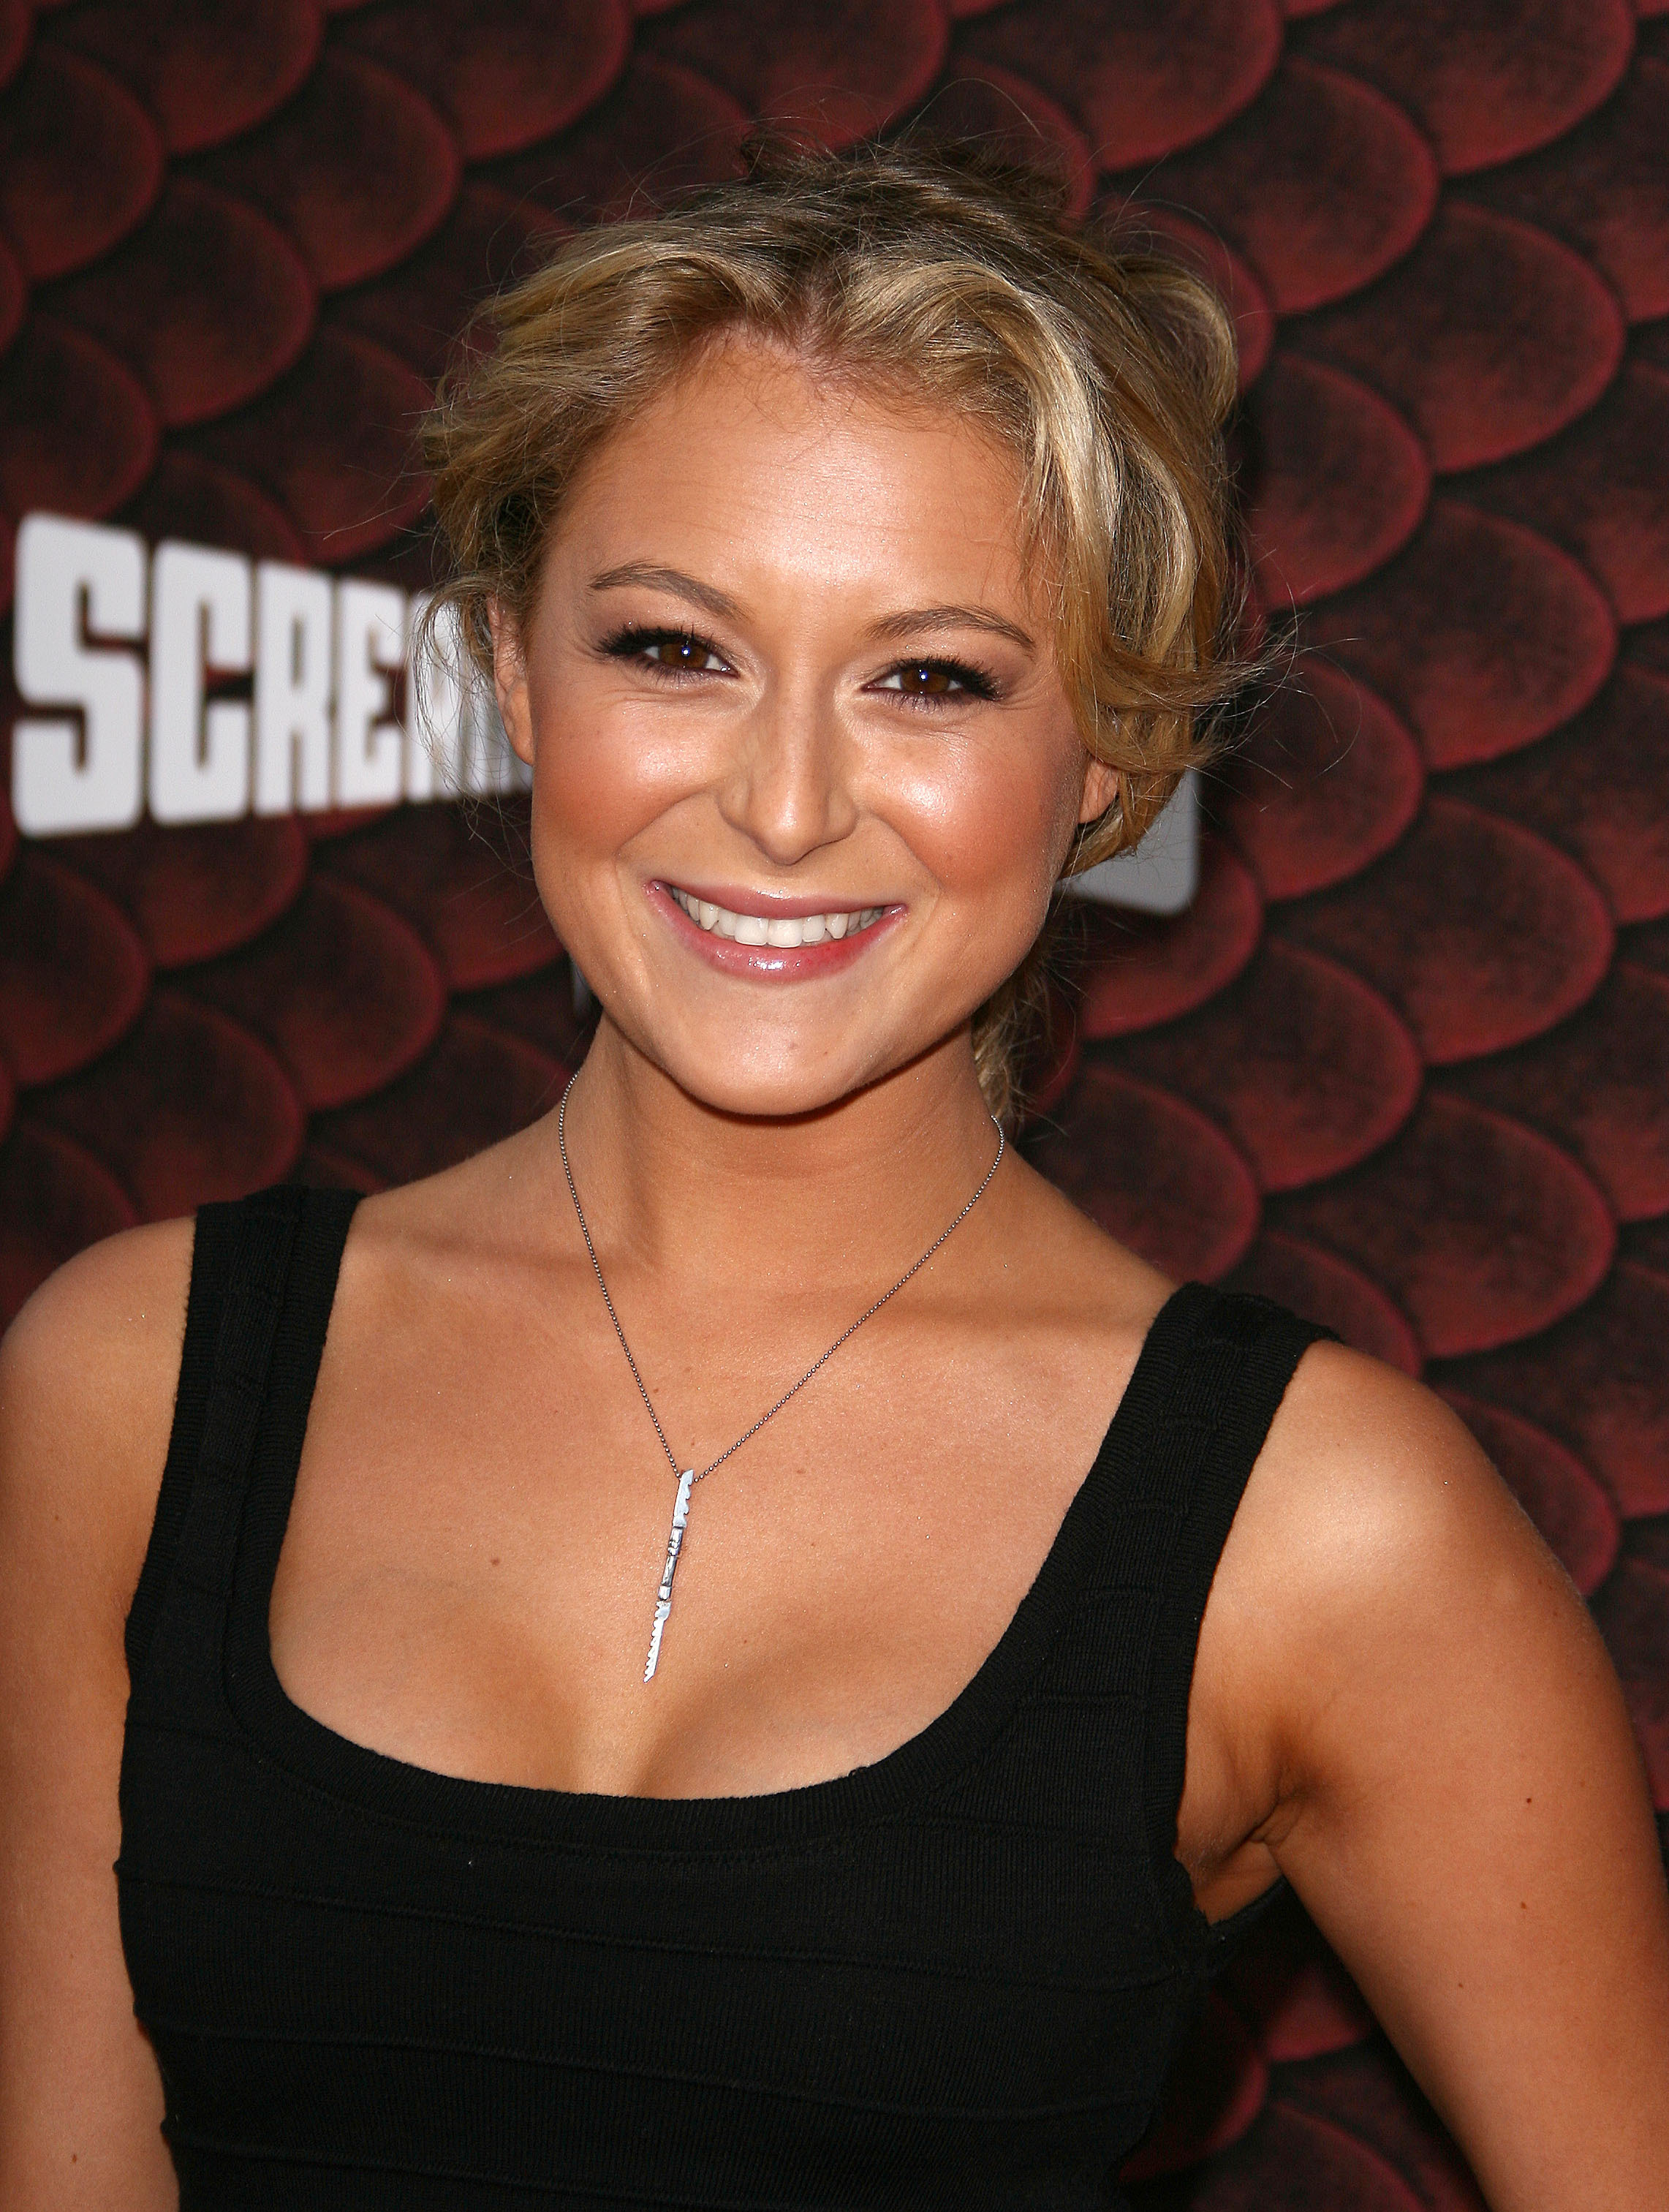 Leggy Alexa Vega strutted her stuff at Spike TV'S Scream 2008